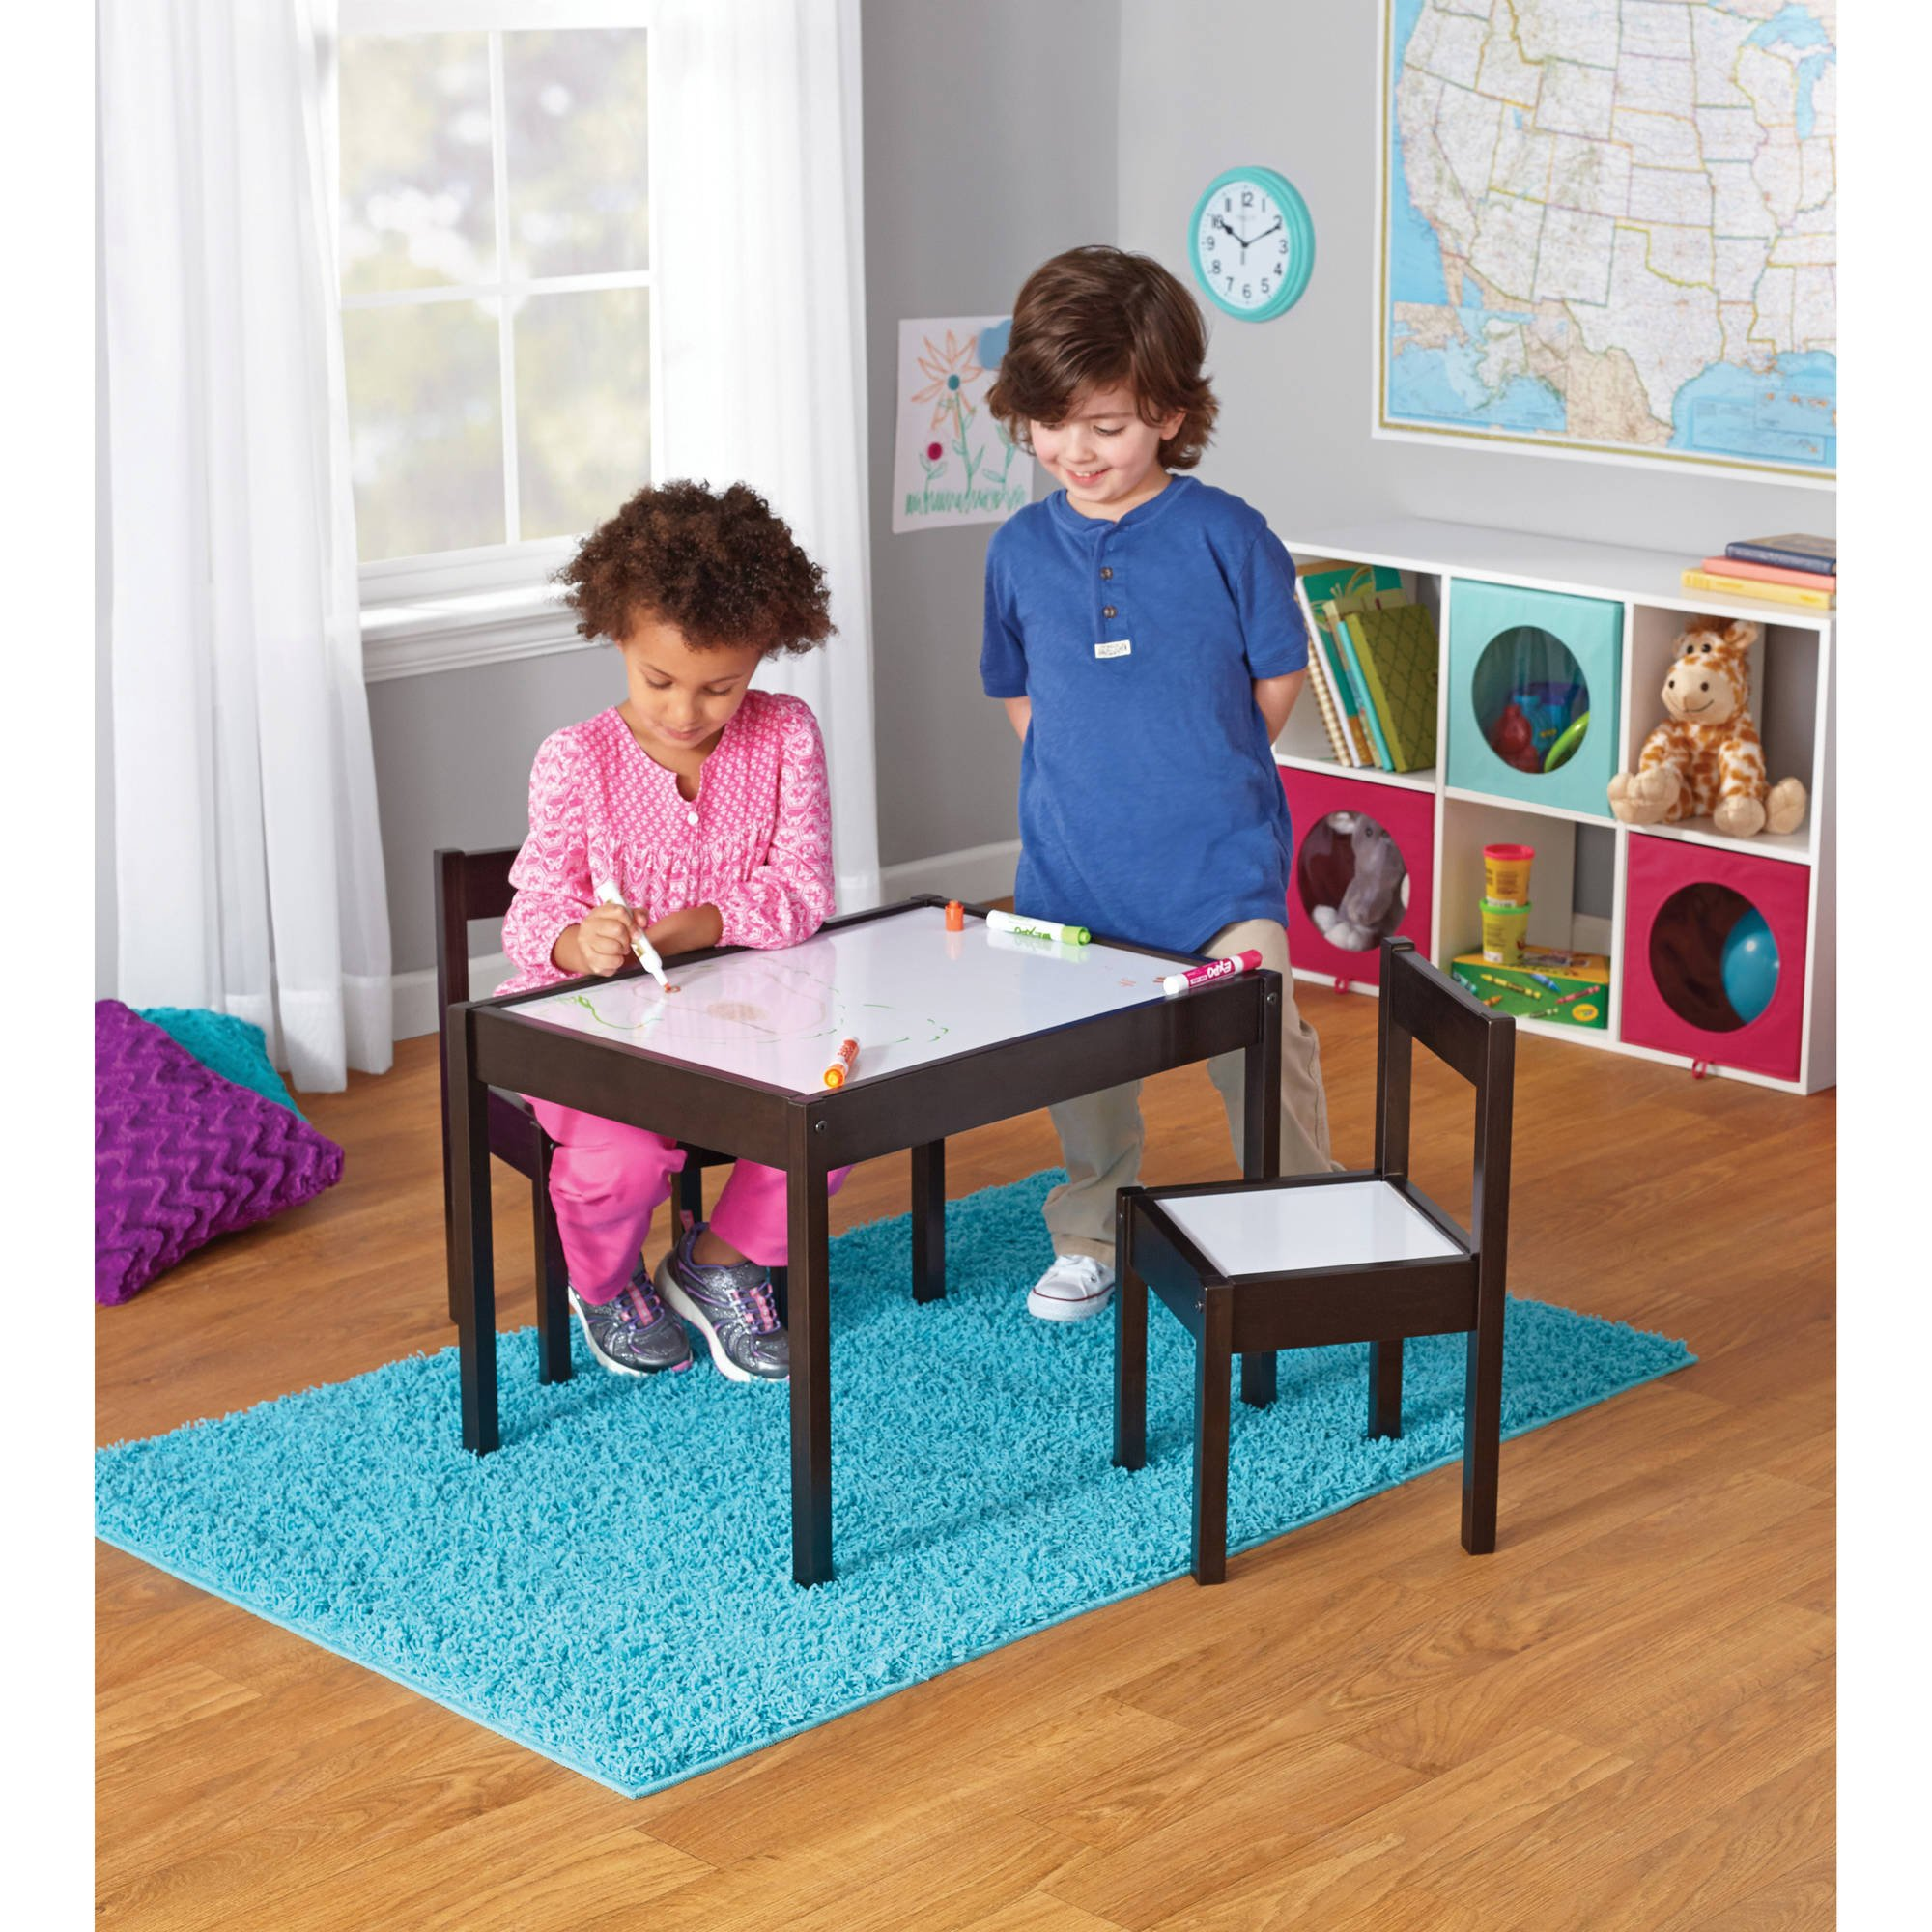 Children's Table and Chairs, Dry-erase table top 3-Piece Espresso